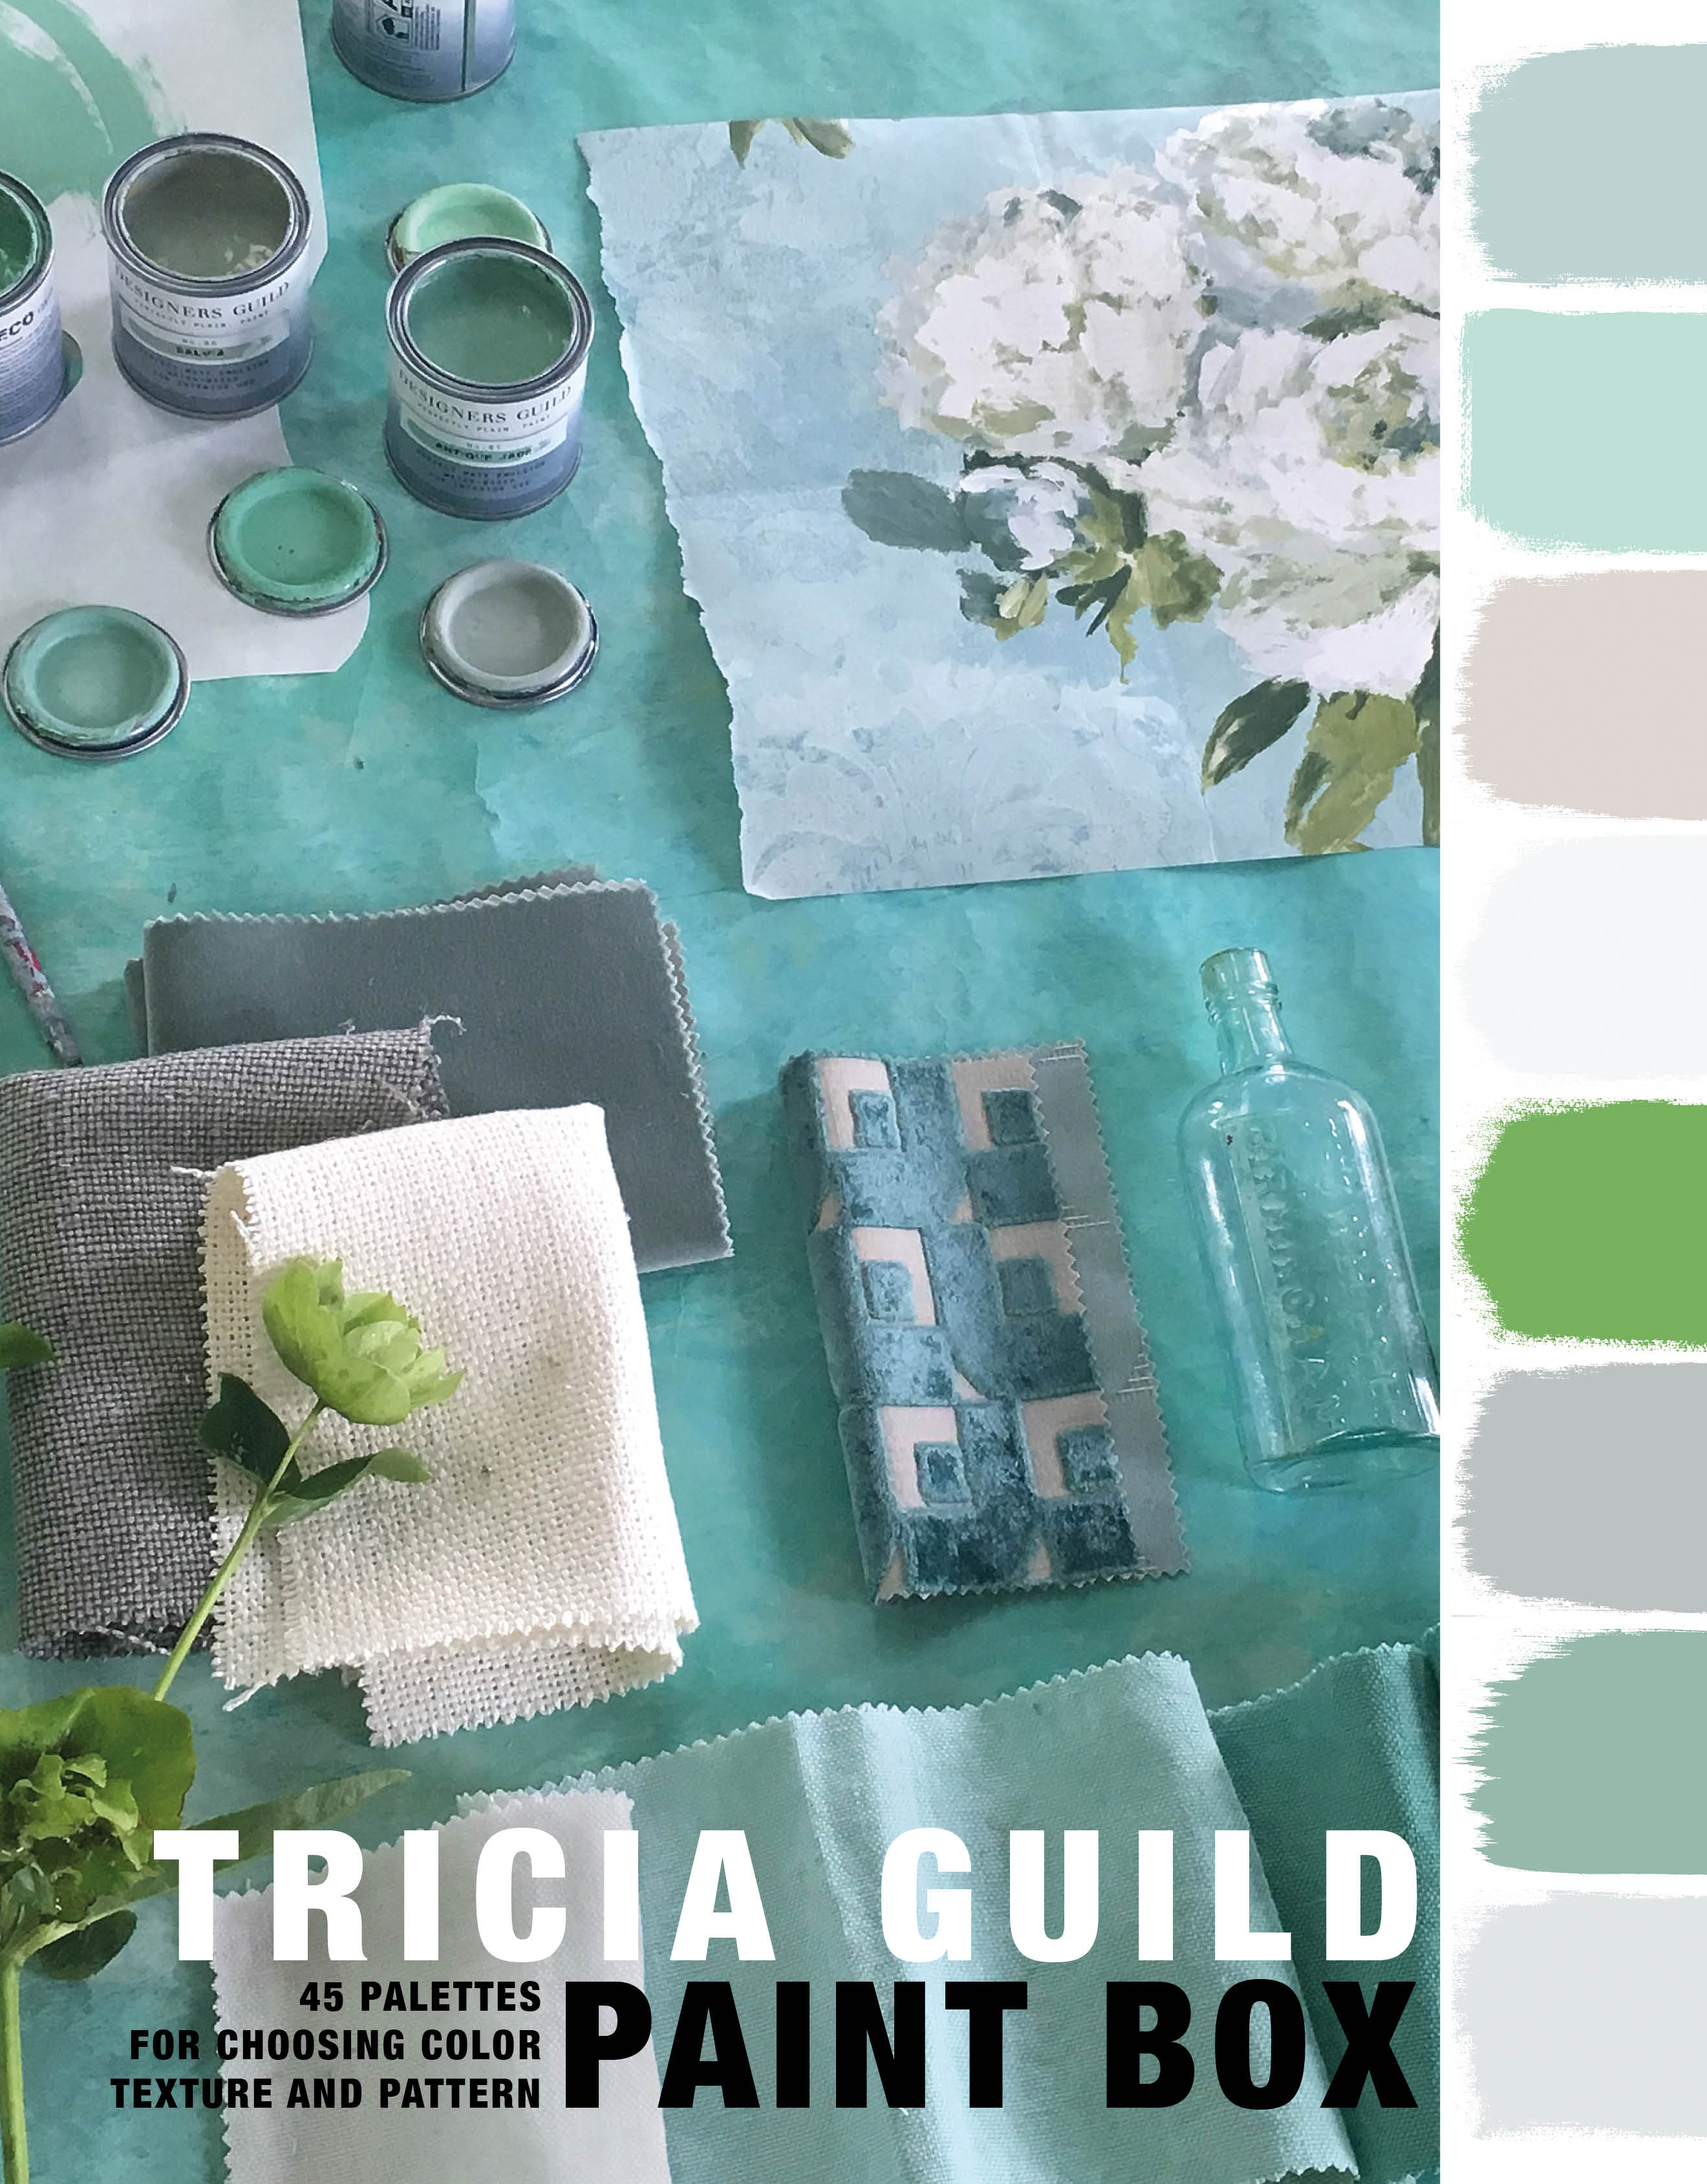 Tricia Guild Paint Box